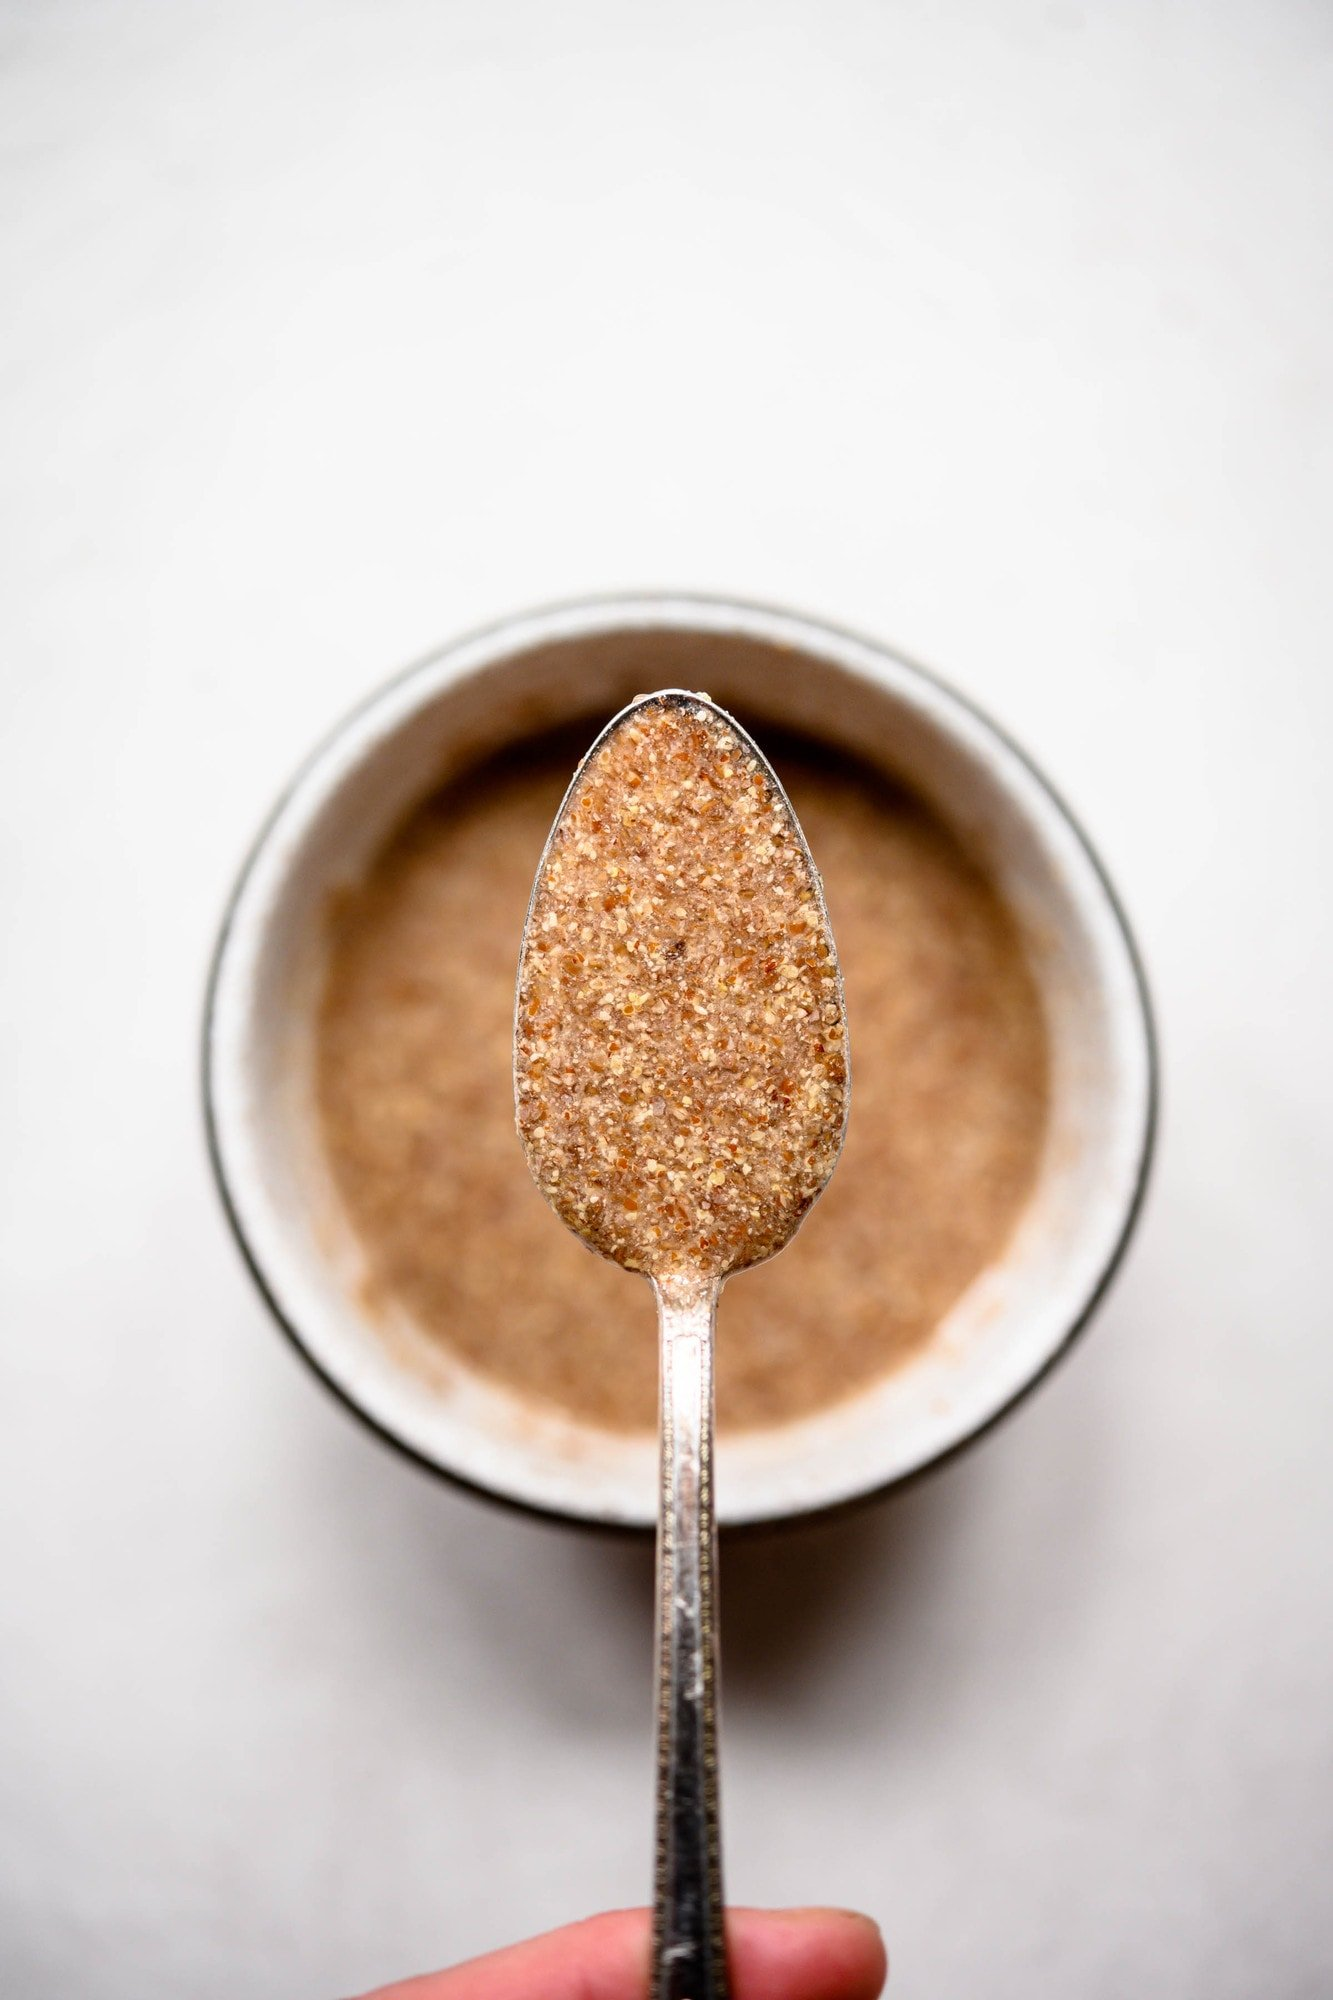 Close up of person holding spoon of flax egg over bowl on white background